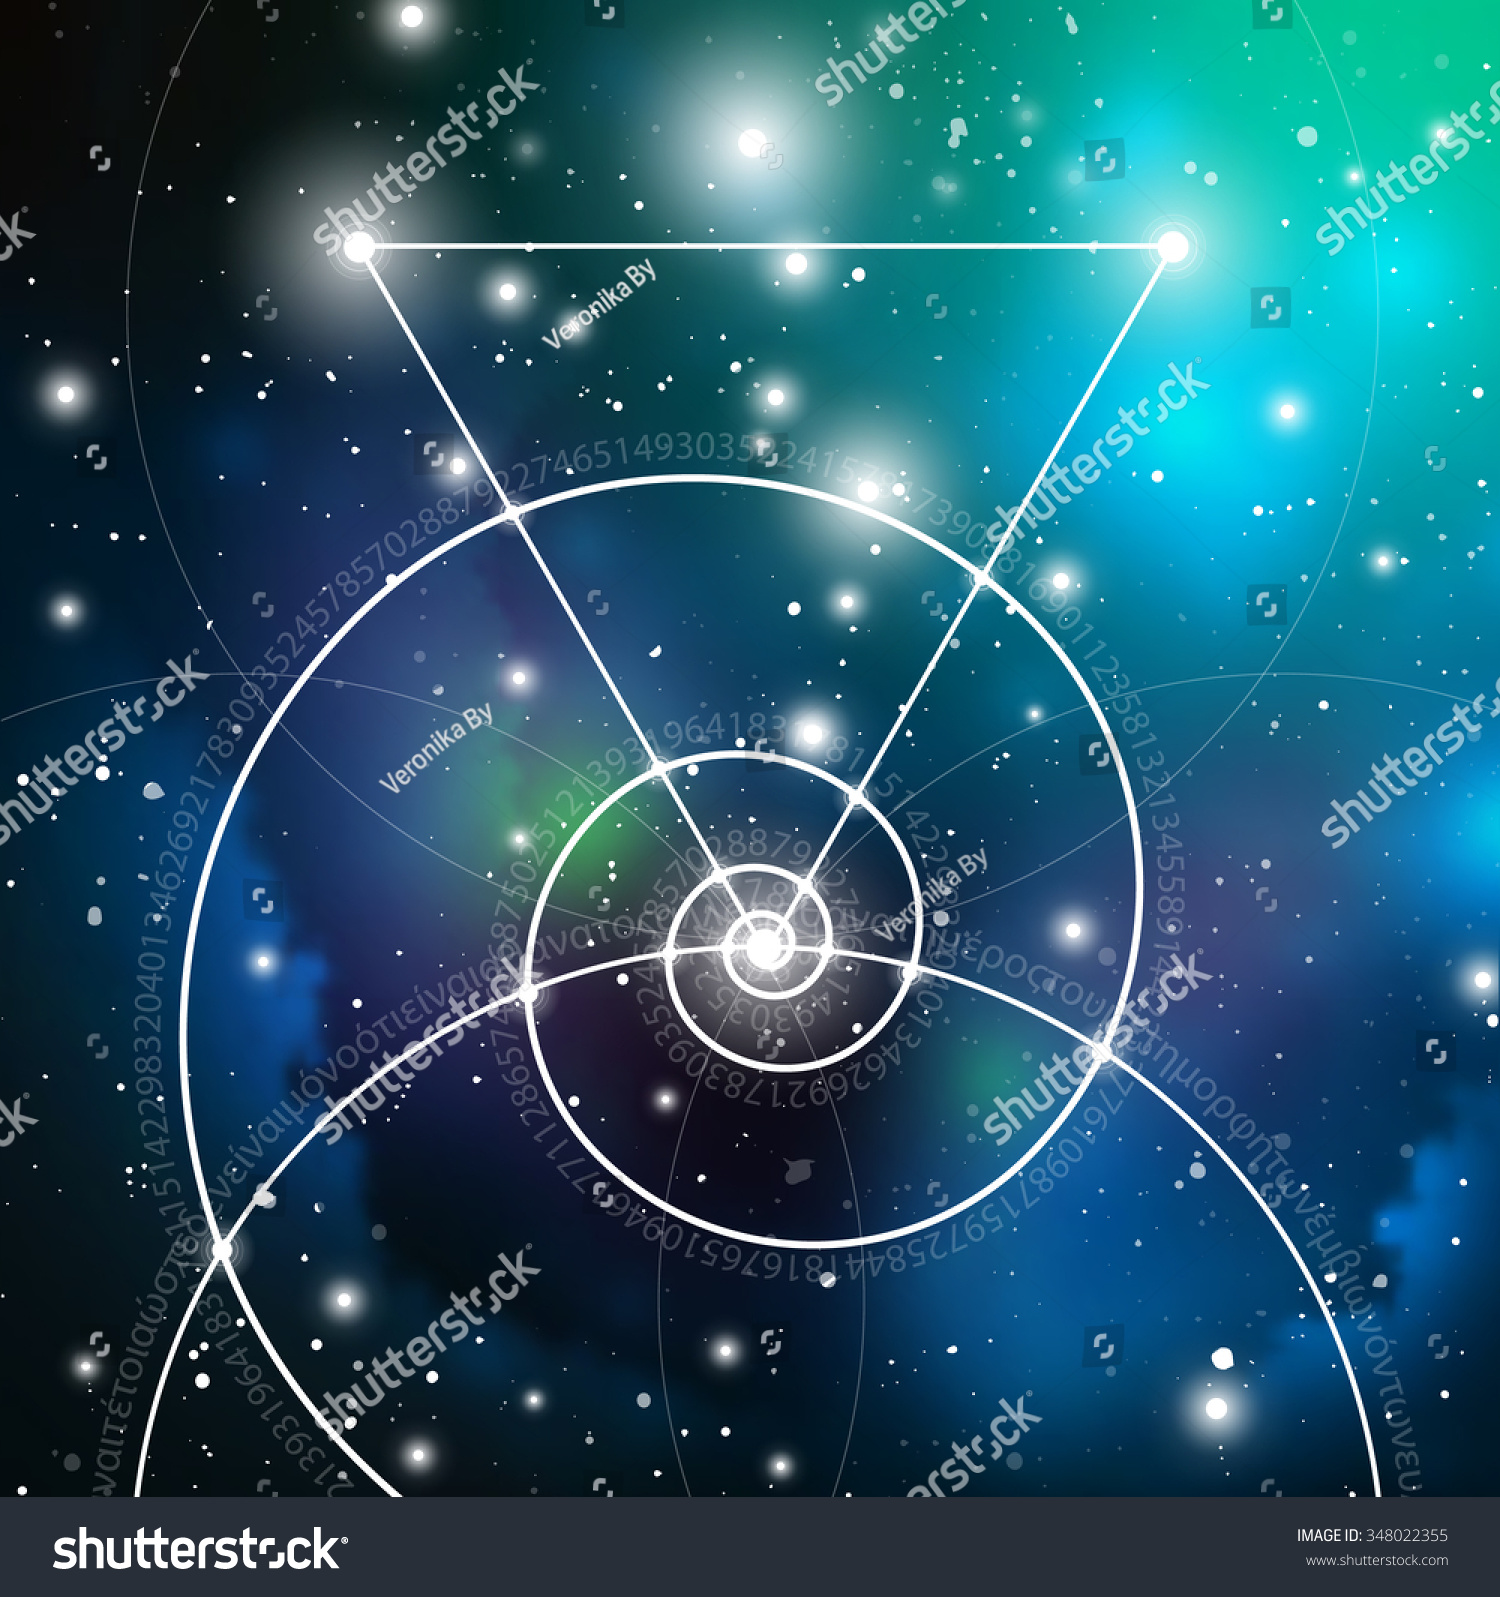 Mathematical symbols digits space formula nature stock vector mathematical symbols and digits in space the formula of nature greek letters there biocorpaavc Gallery